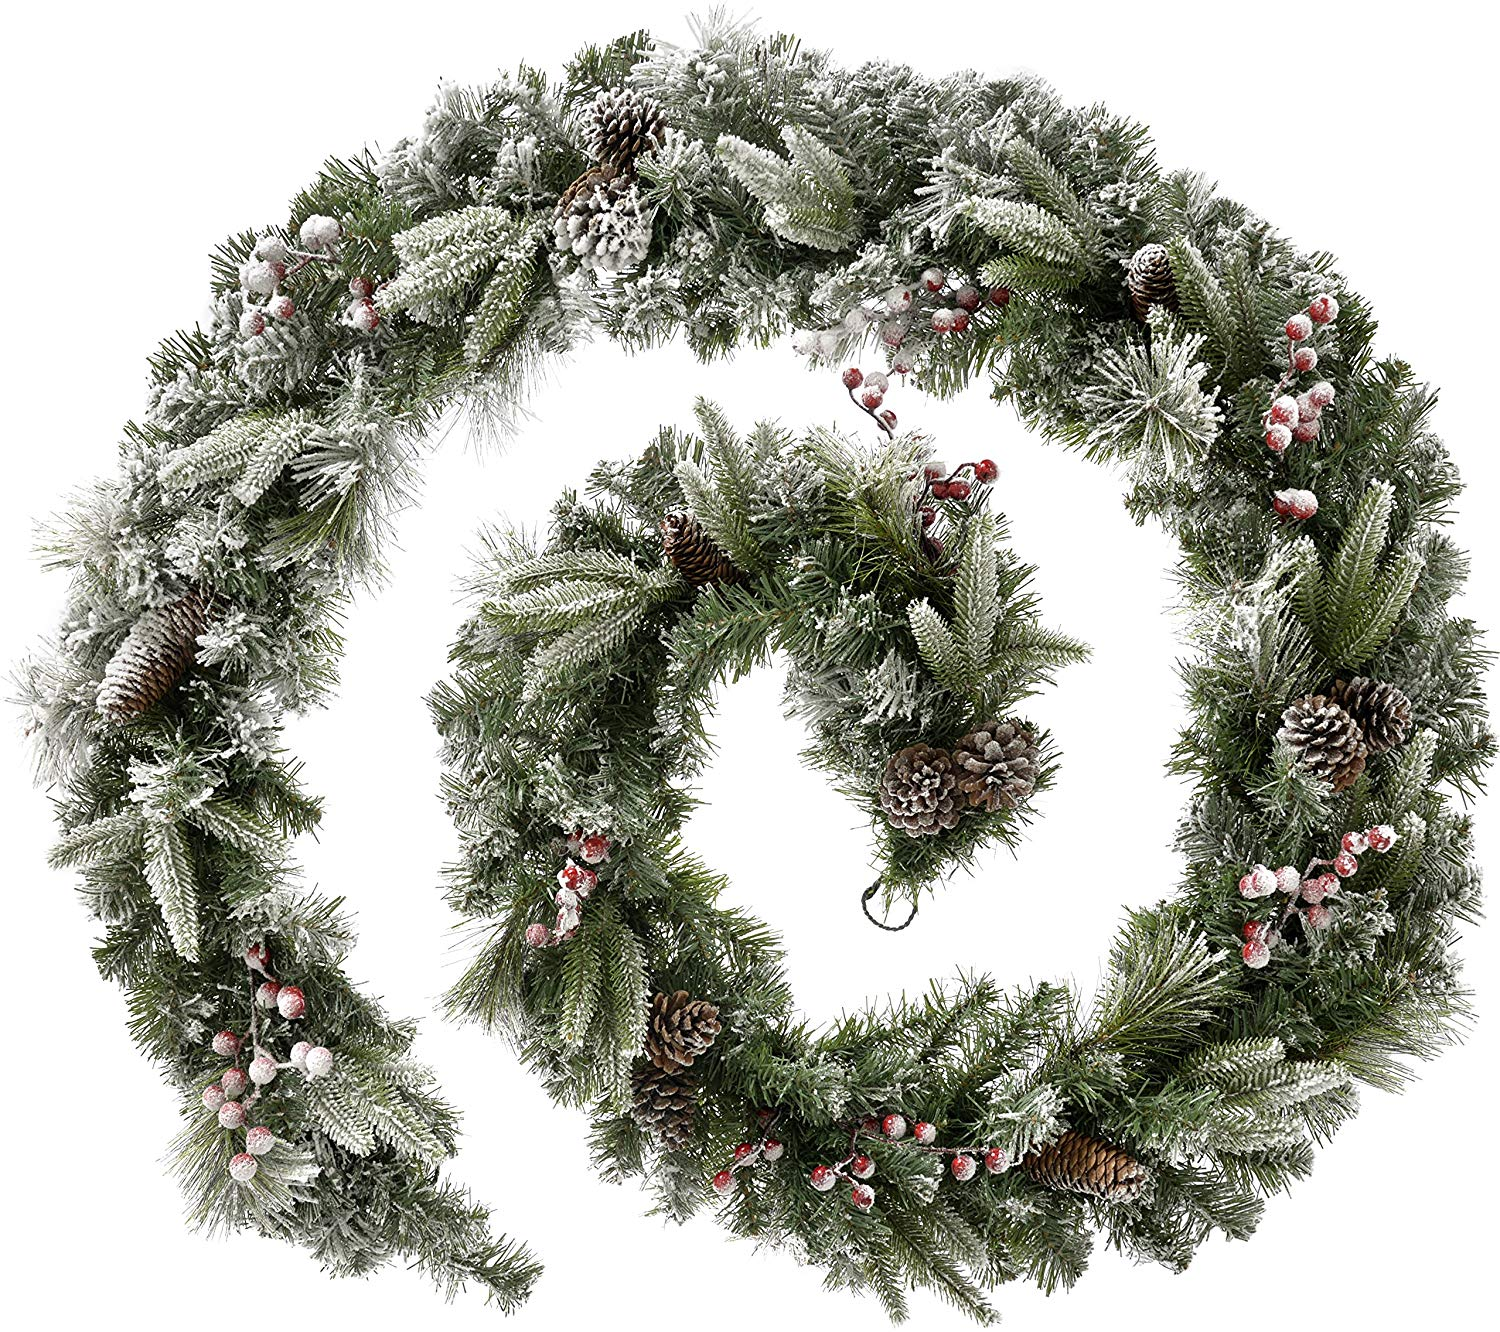 Extra Thick Mixed Pine Snow Flocked Garland Decorated with Cones and Berries, Green/White, 9 feet